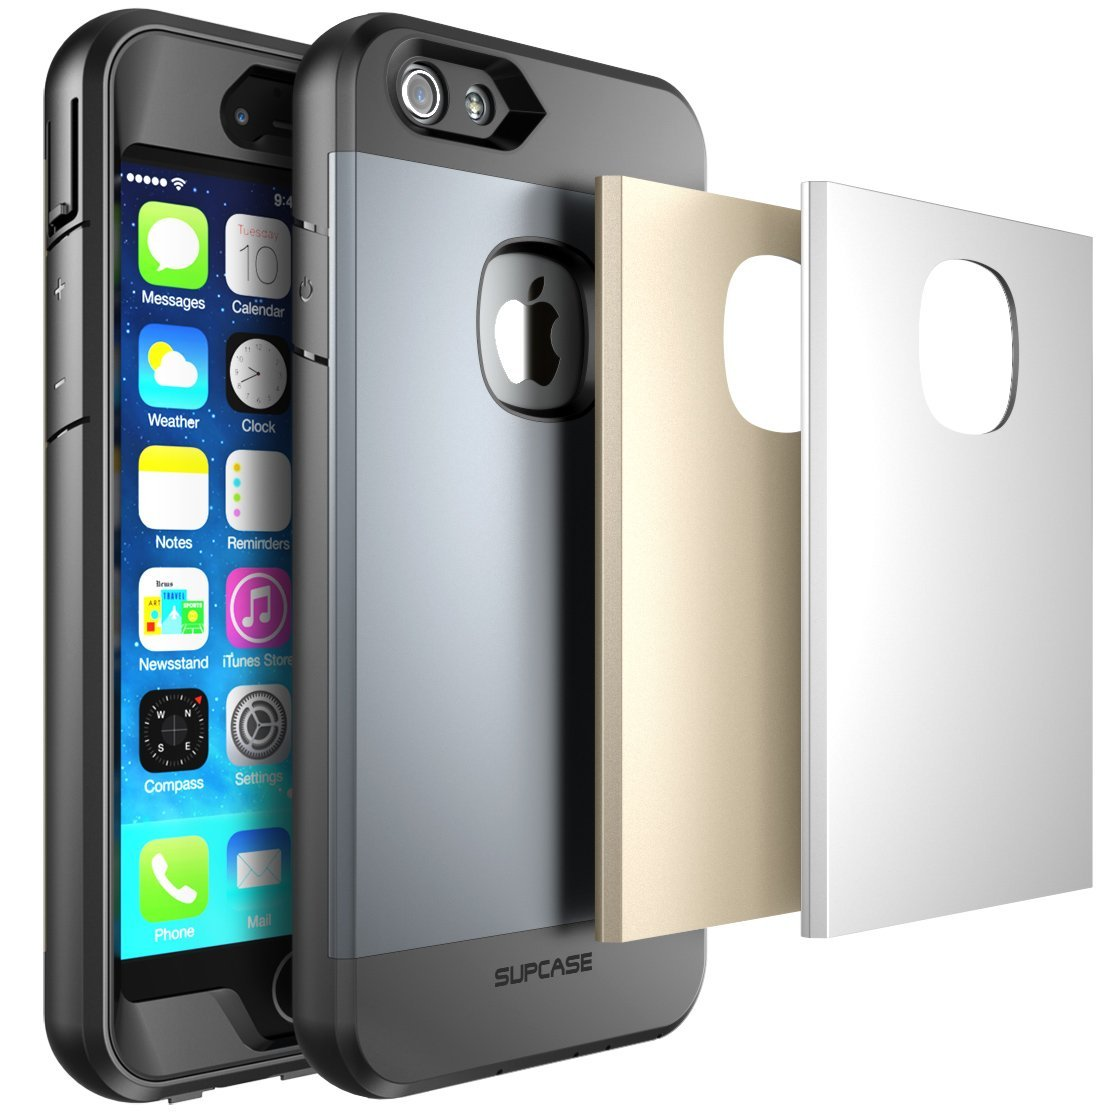 newest e2ee9 ce977 SUPCASE Apple iPhone 6 Plus 5.5 inch Case - Aegis Ultra-thin Water  Resistant, Dust and Impact Proof Protective Cover